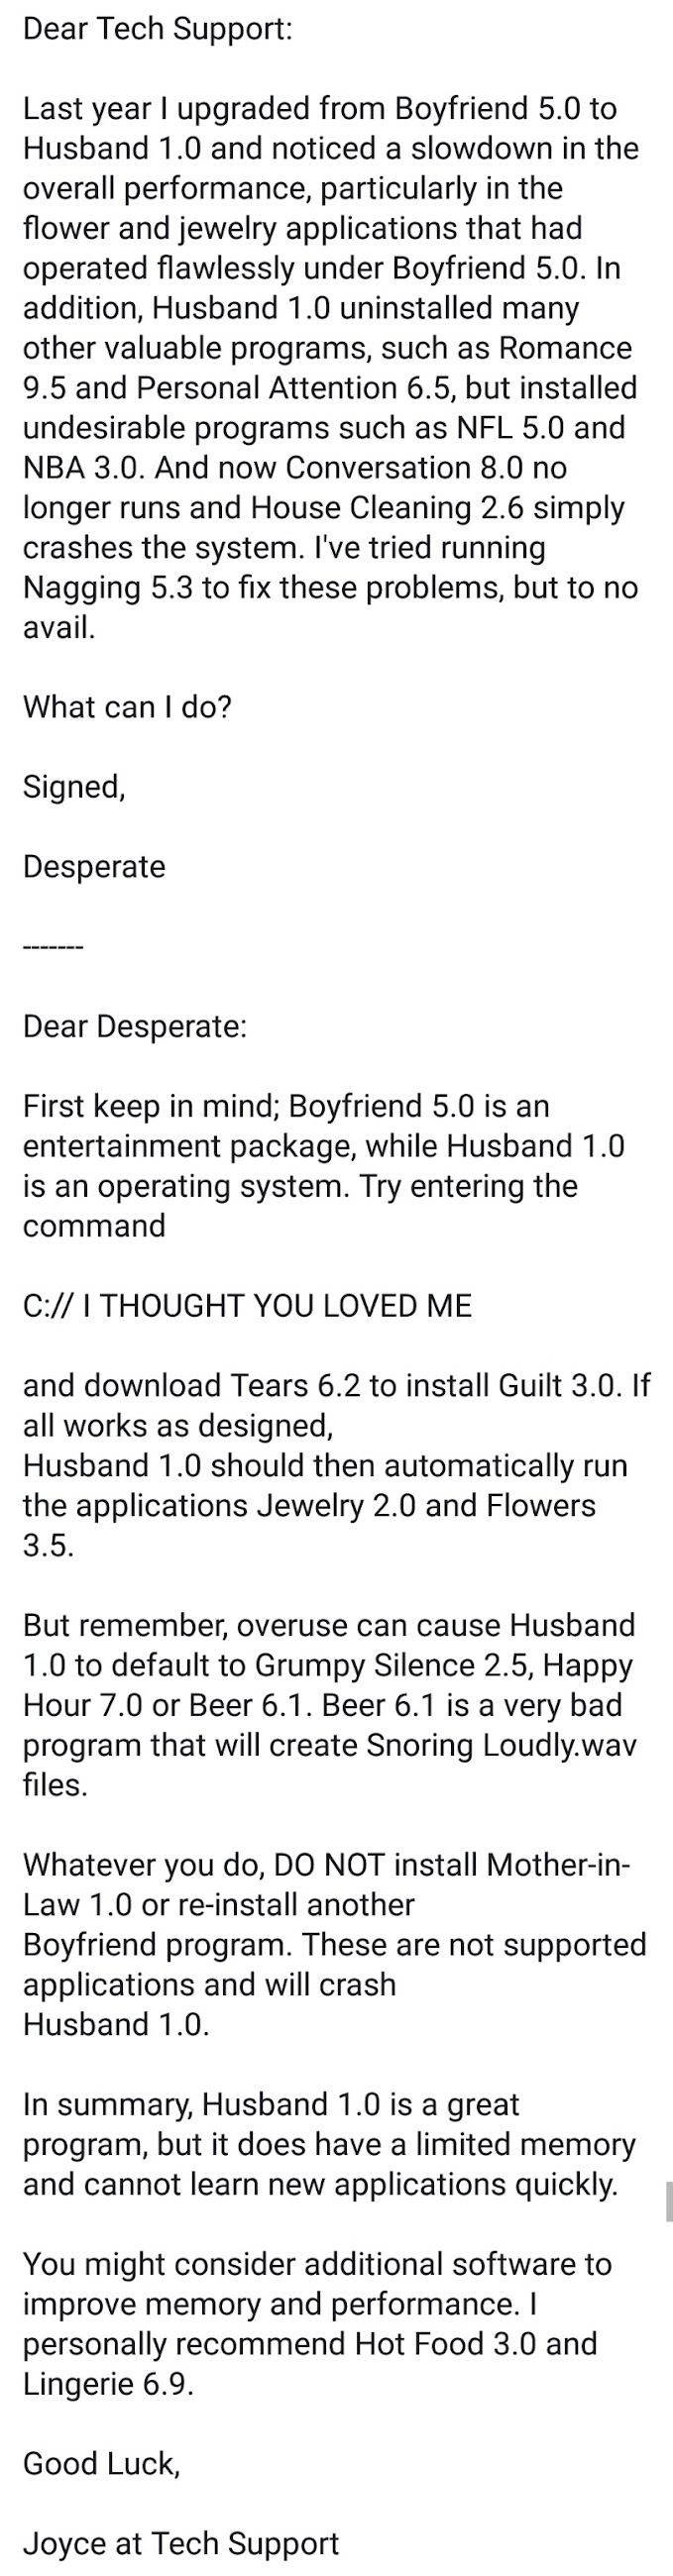 Funny Tech Support Husband 1.0 Call Picture